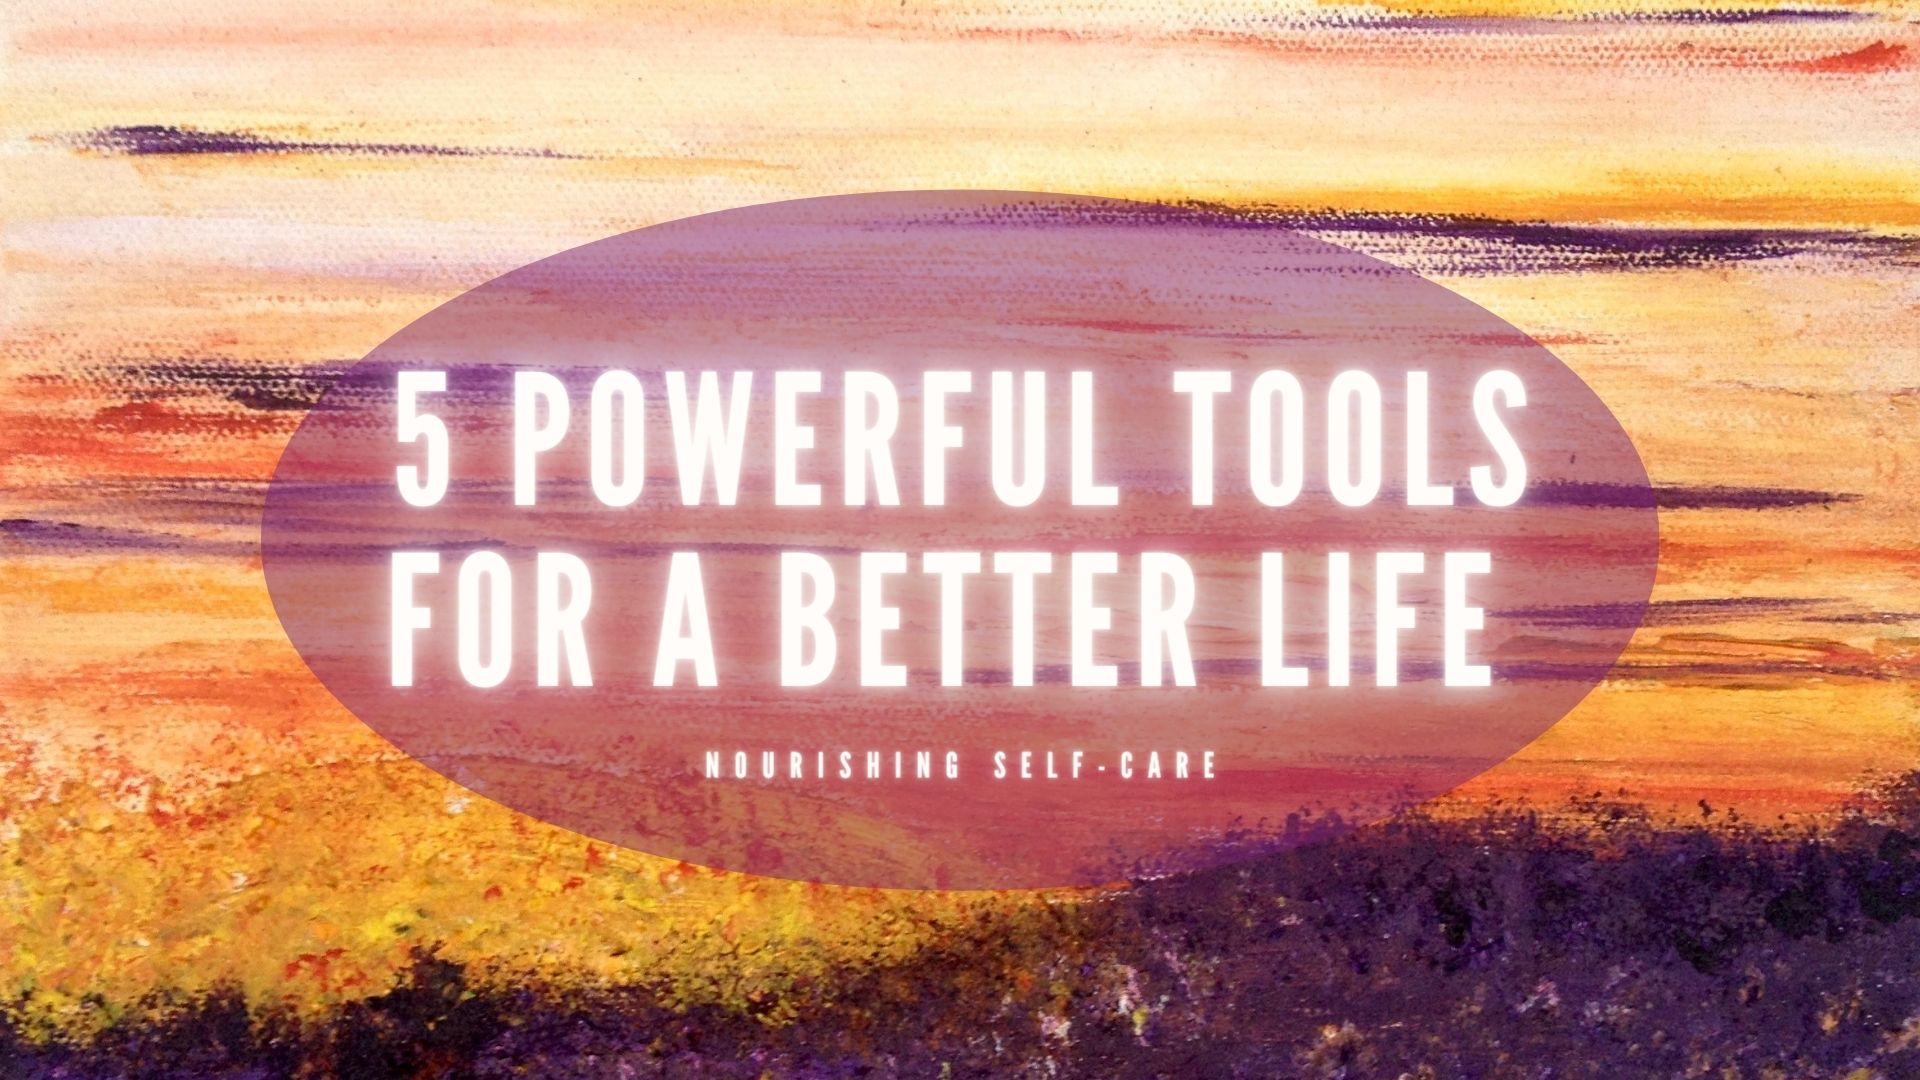 5 POWERFUL TOOLS FOR A BETTER LIFE